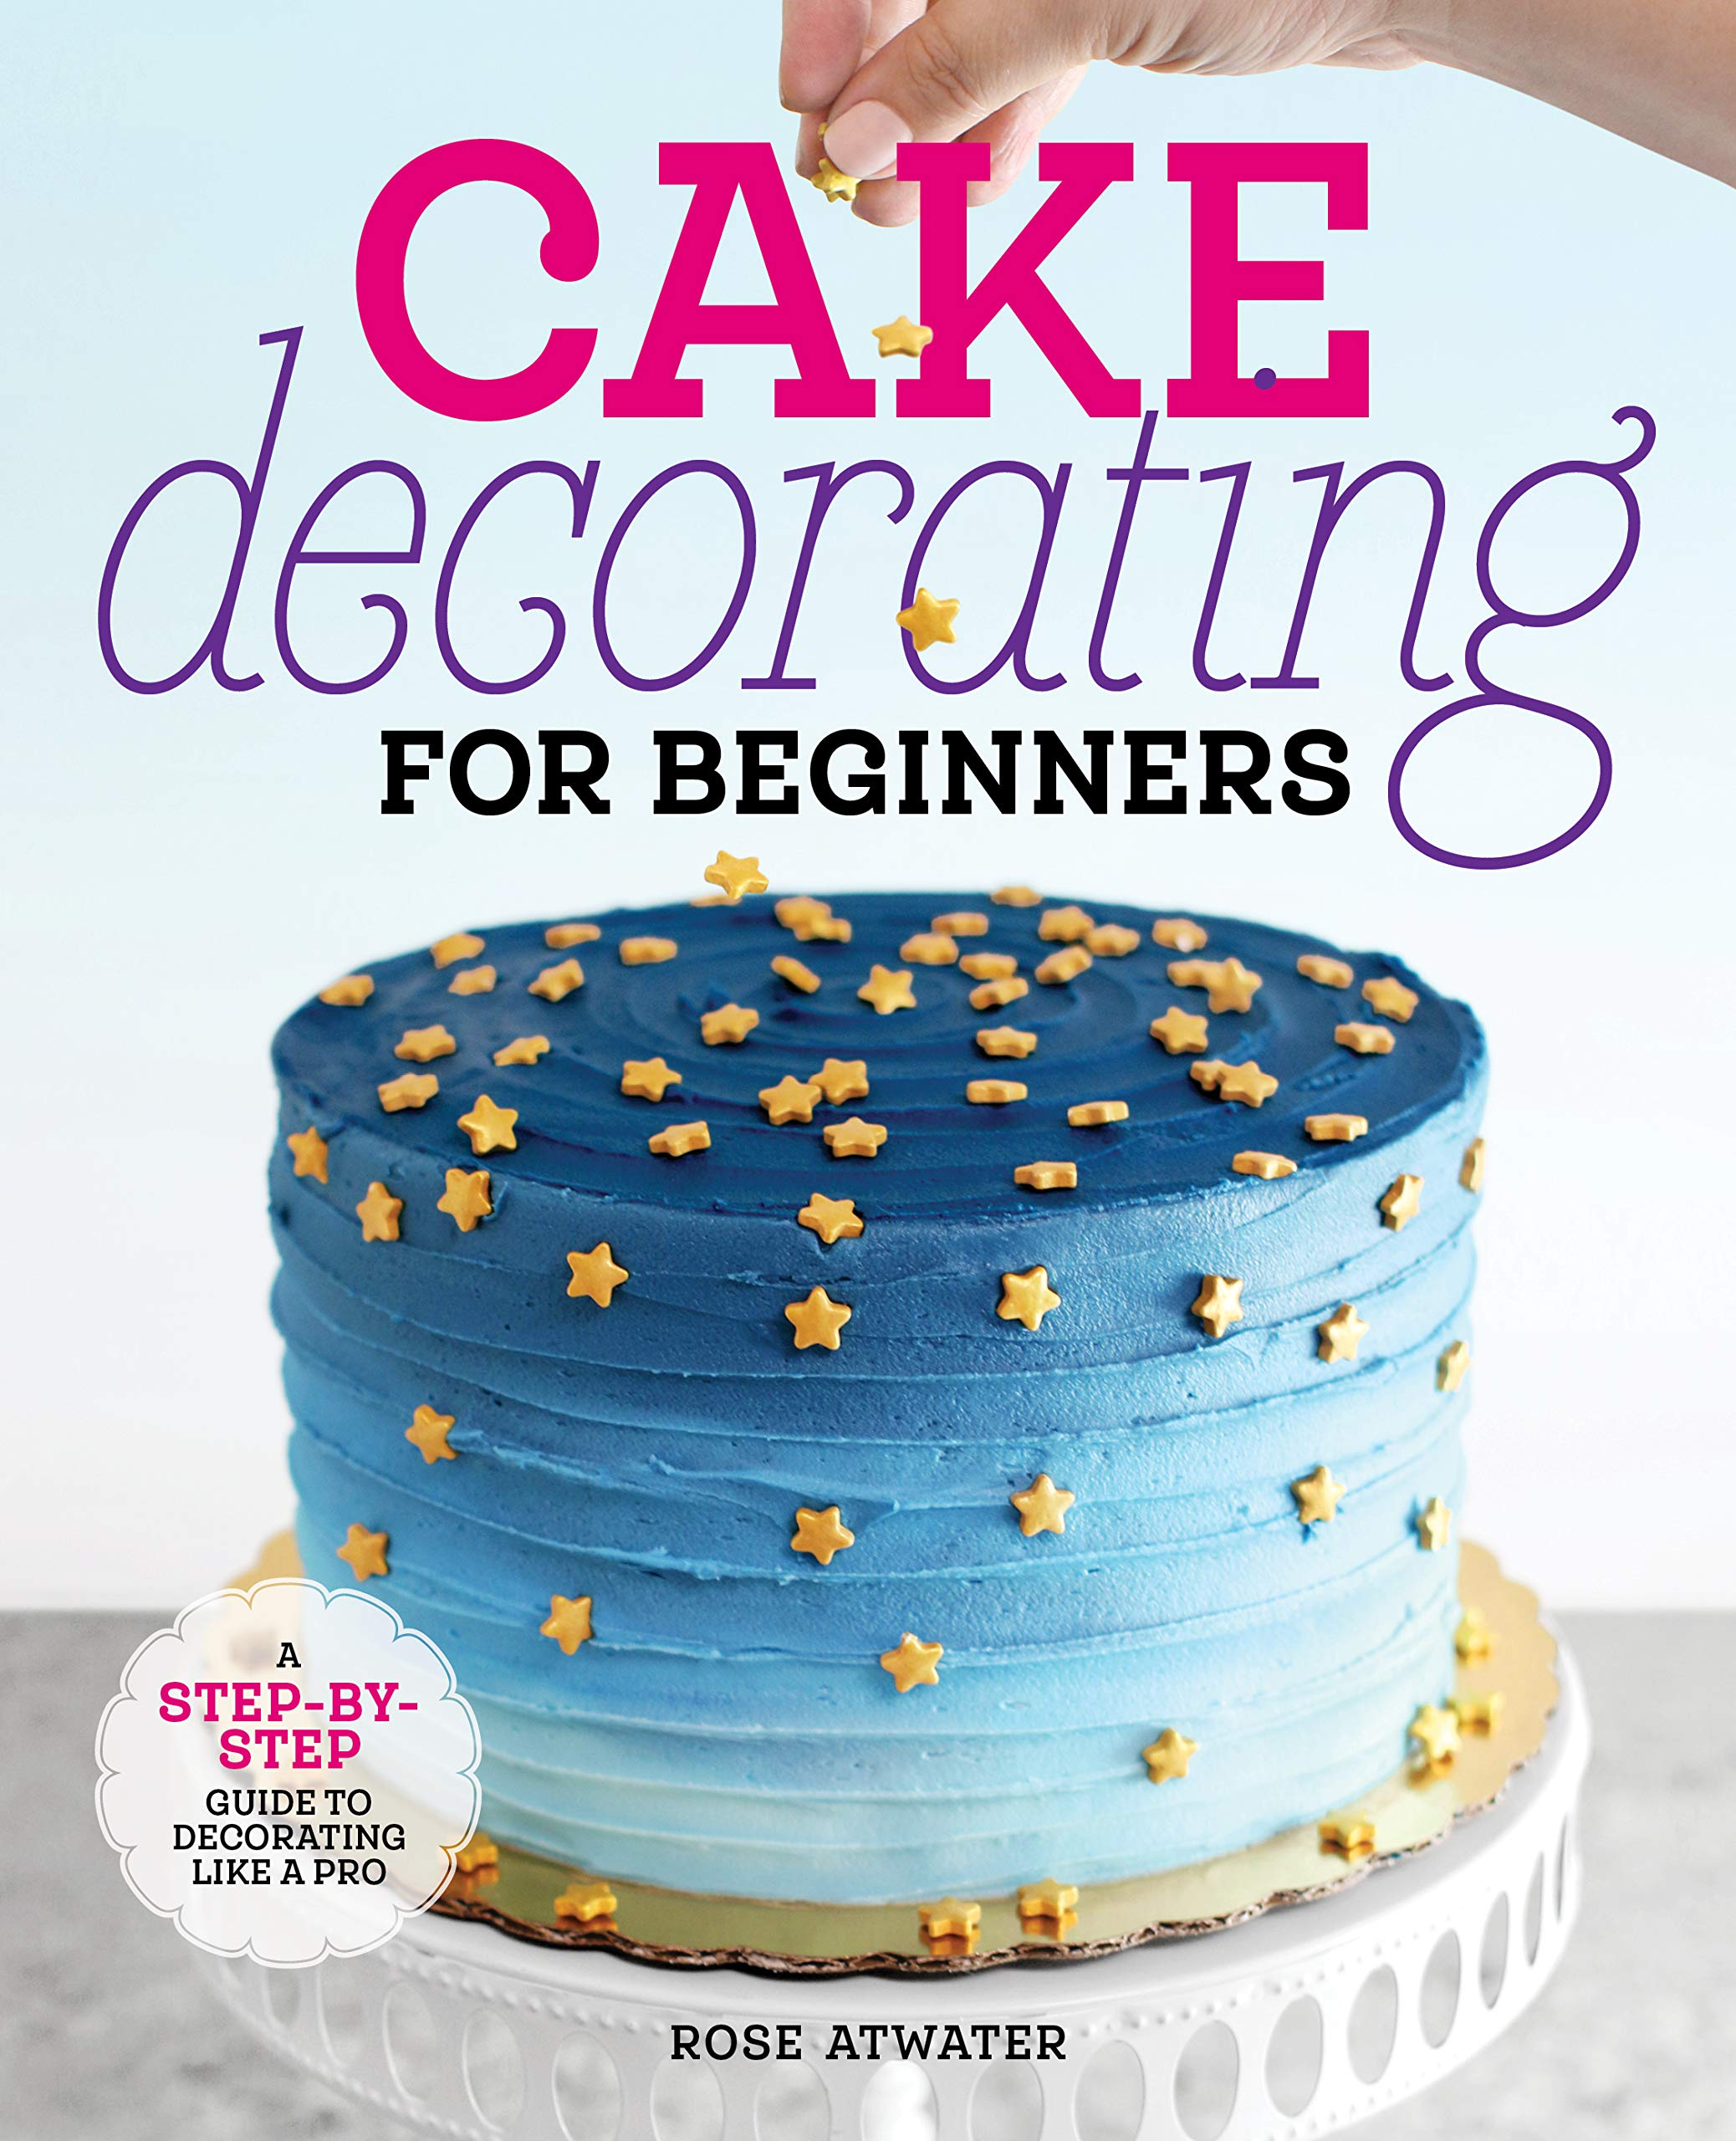 Cake Decorating For Beginners A Step By Step Guide To Decorating Like A Pro Atwater Rose 9781641525893 Amazon Com Books